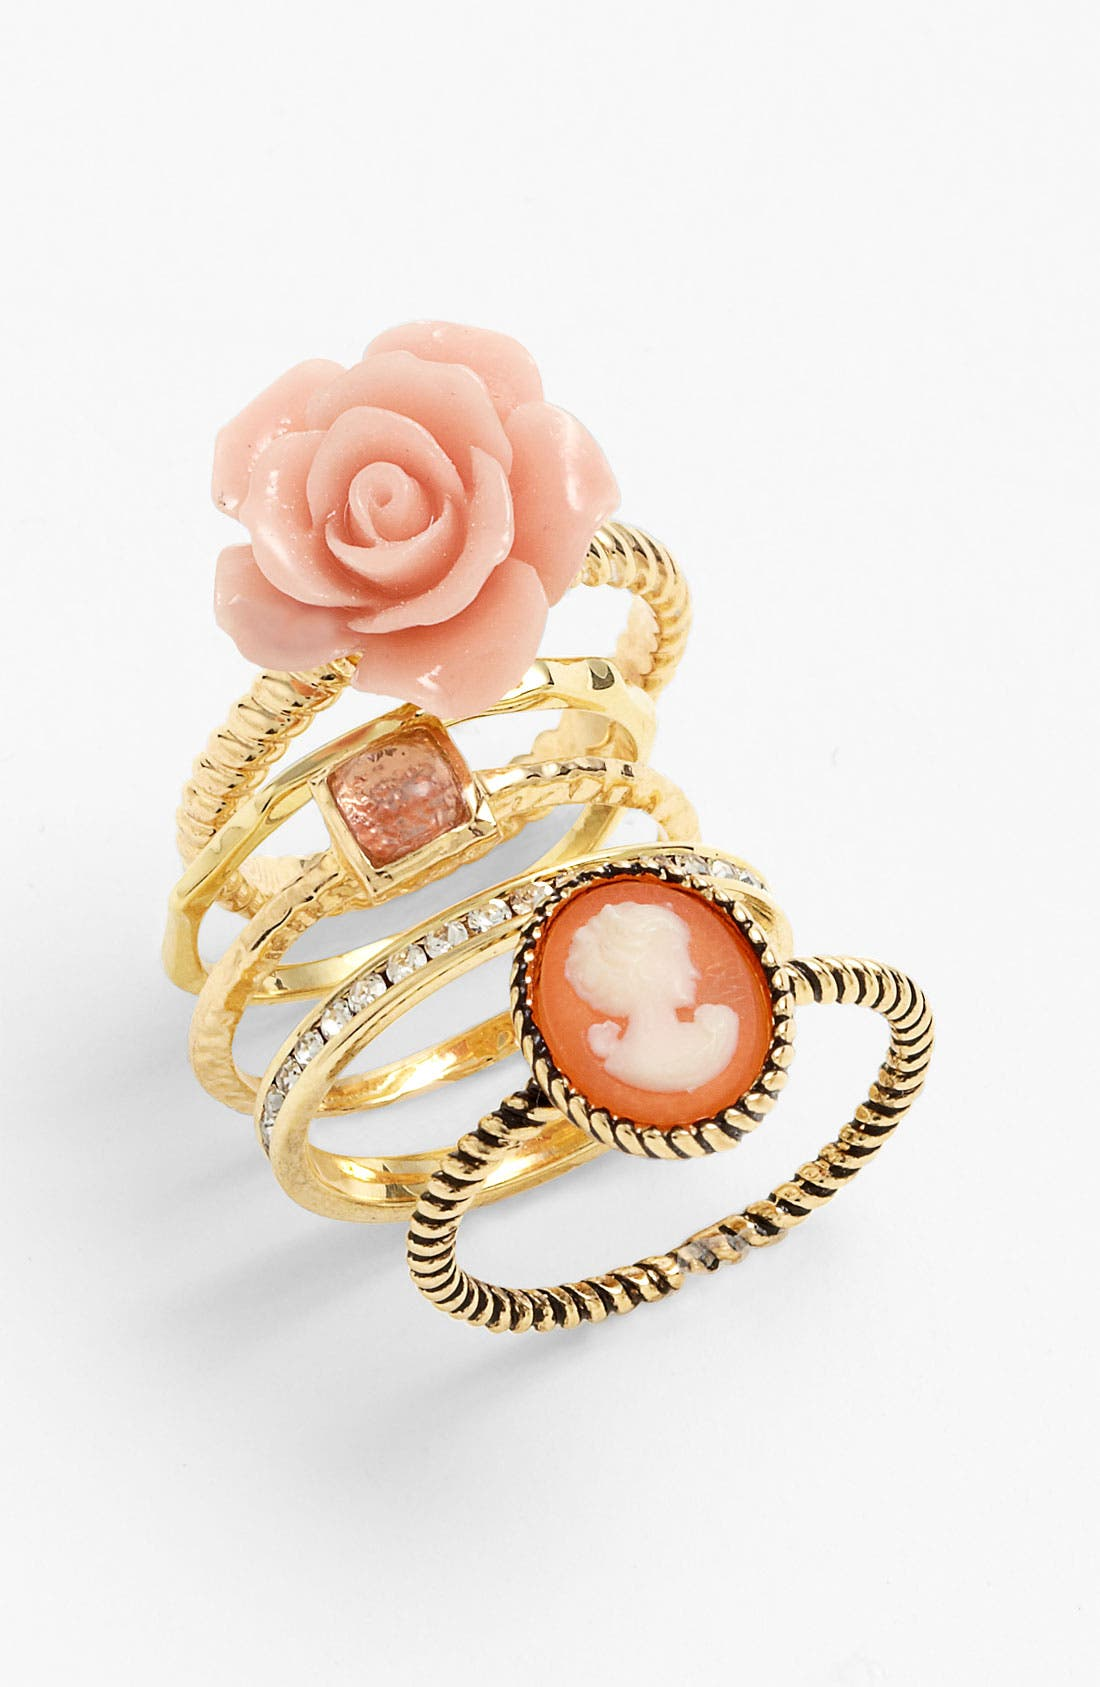 Alternate Image 1 Selected - Ariella Collection Floral & Cameo Stack Rings (Set of 5) (Nordstrom Exclusive)